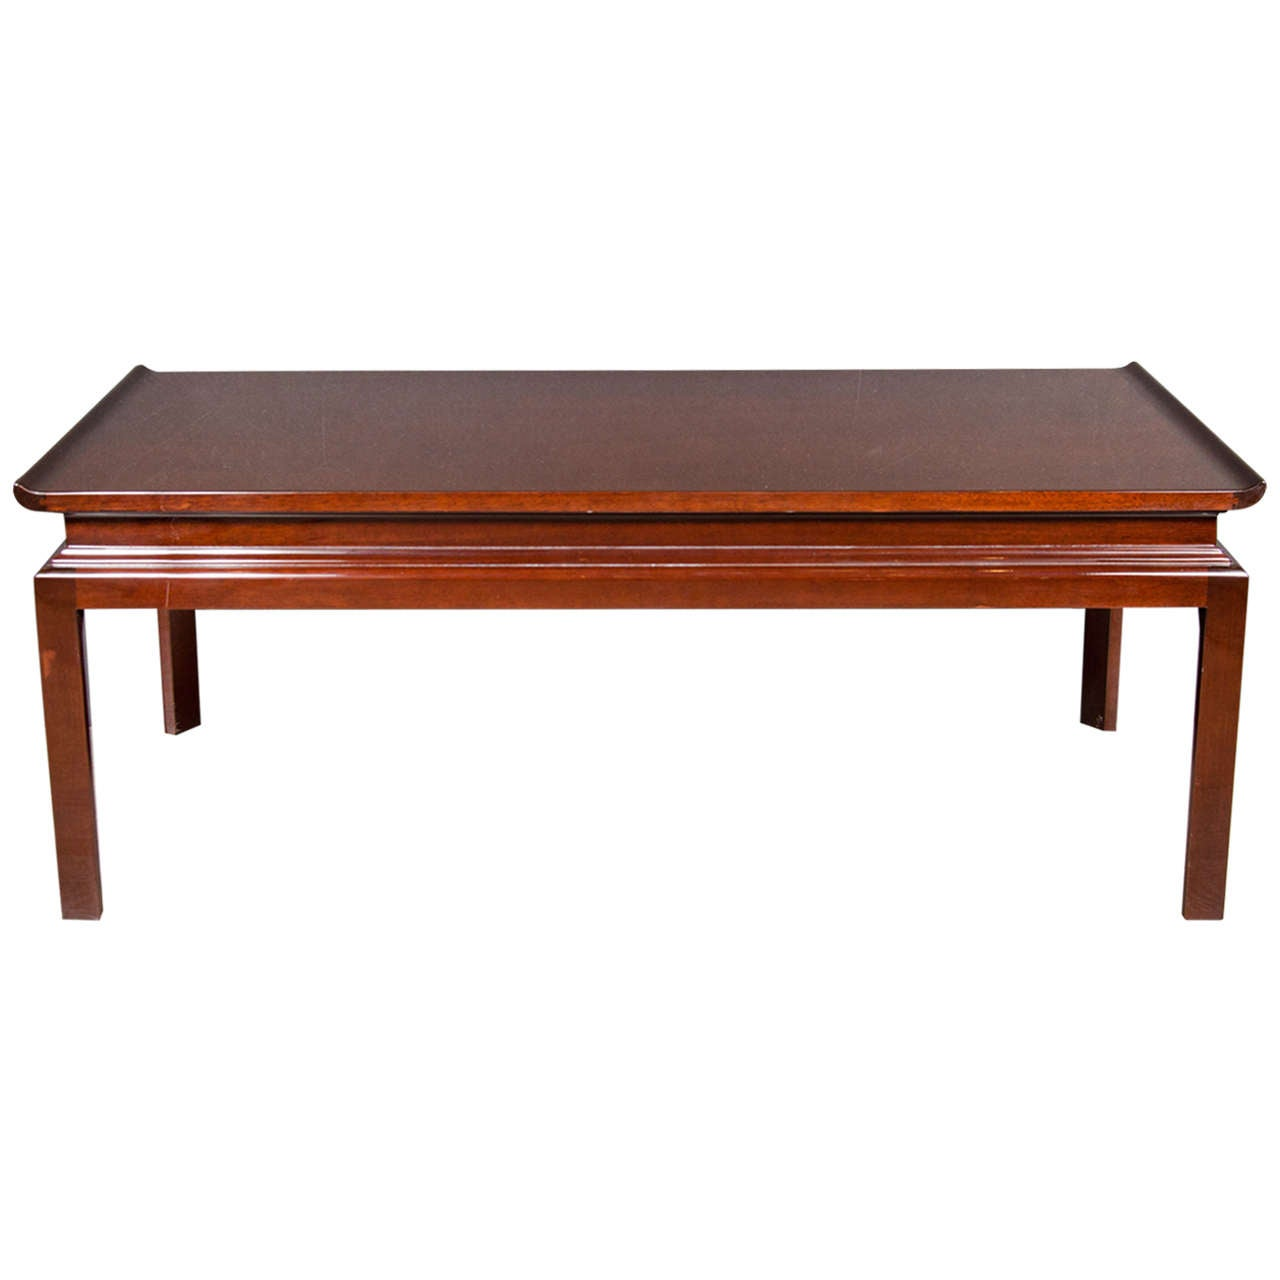 Modernist Pagoda Style Mid-Century Cocktail Table in the manner of James Mont